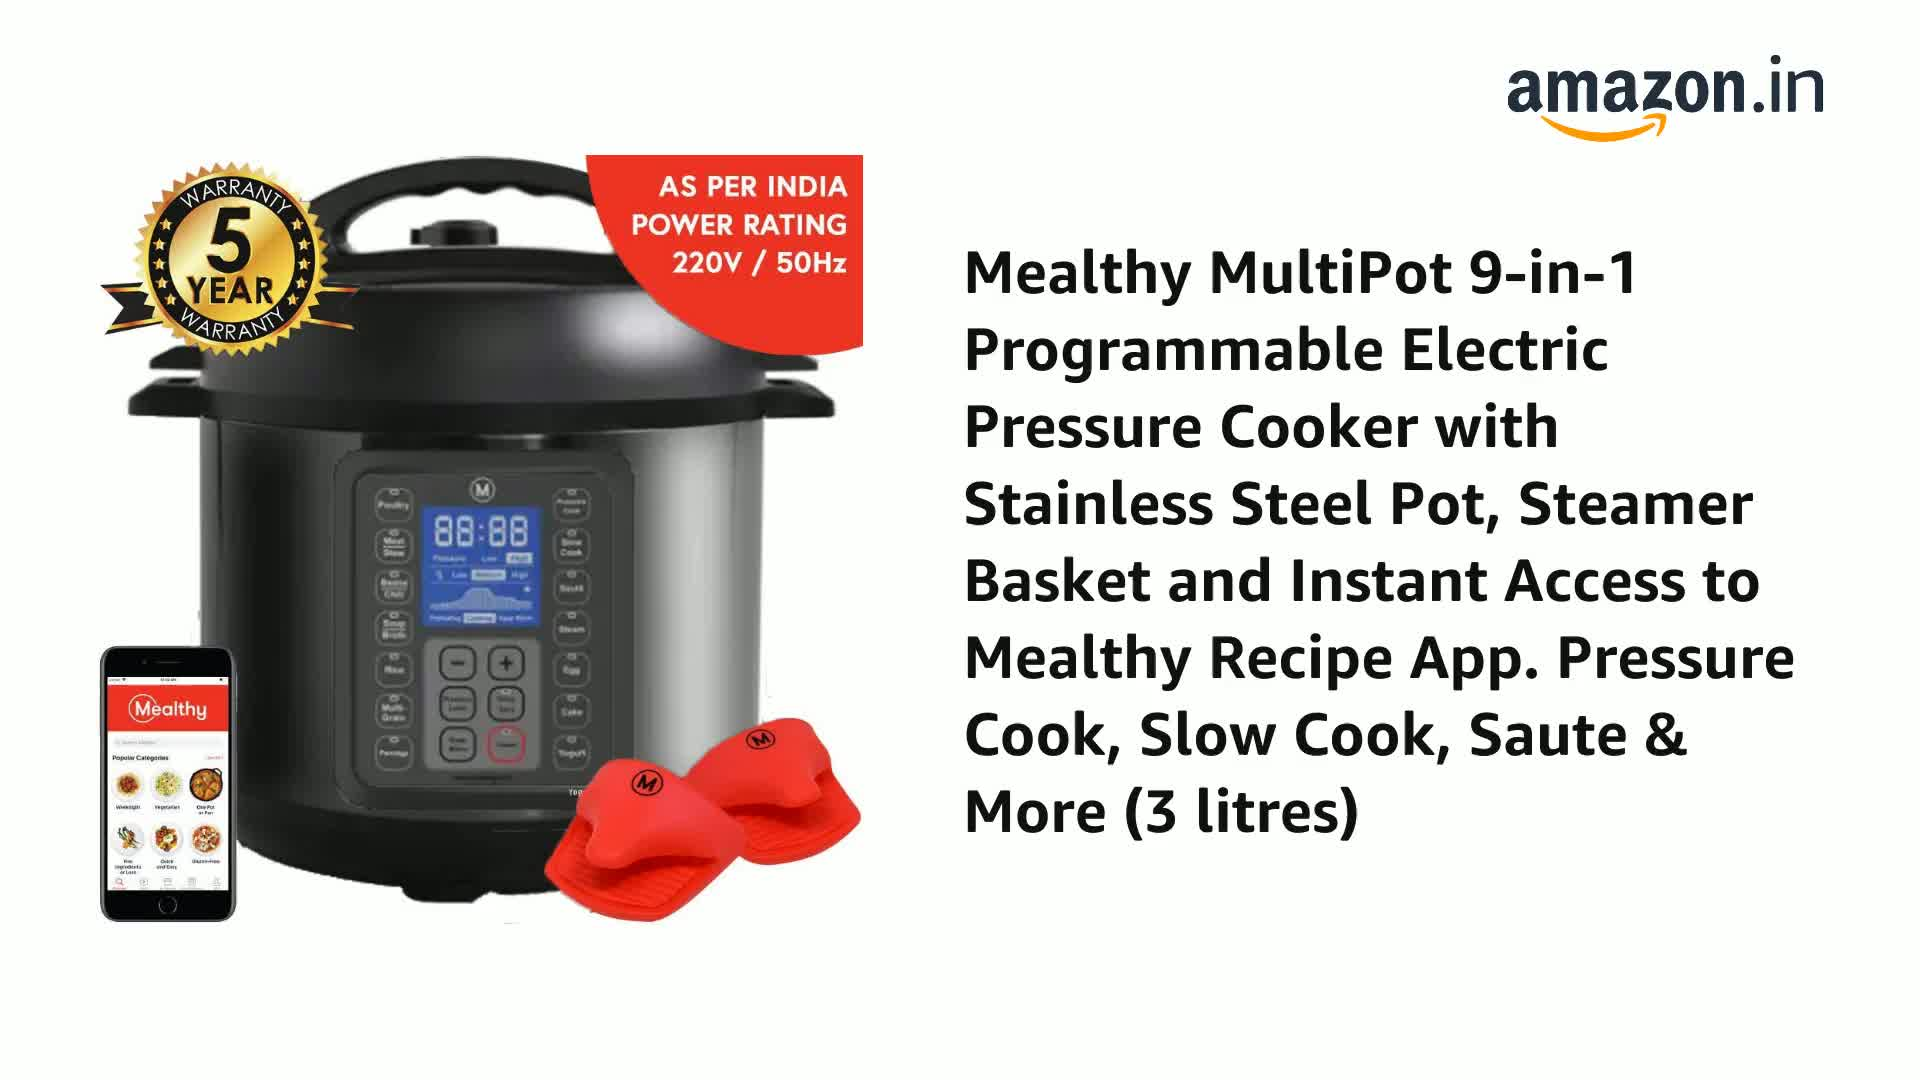 Mealthy MultiPot 9-in-1 Programmable Electric Pressure Cooker with Stainless Steel Pot, Steamer Basket and Instant Access to Mealthy Recipe App. Pressure Cook, Slow Cook, Saute & More (3 litres) 2